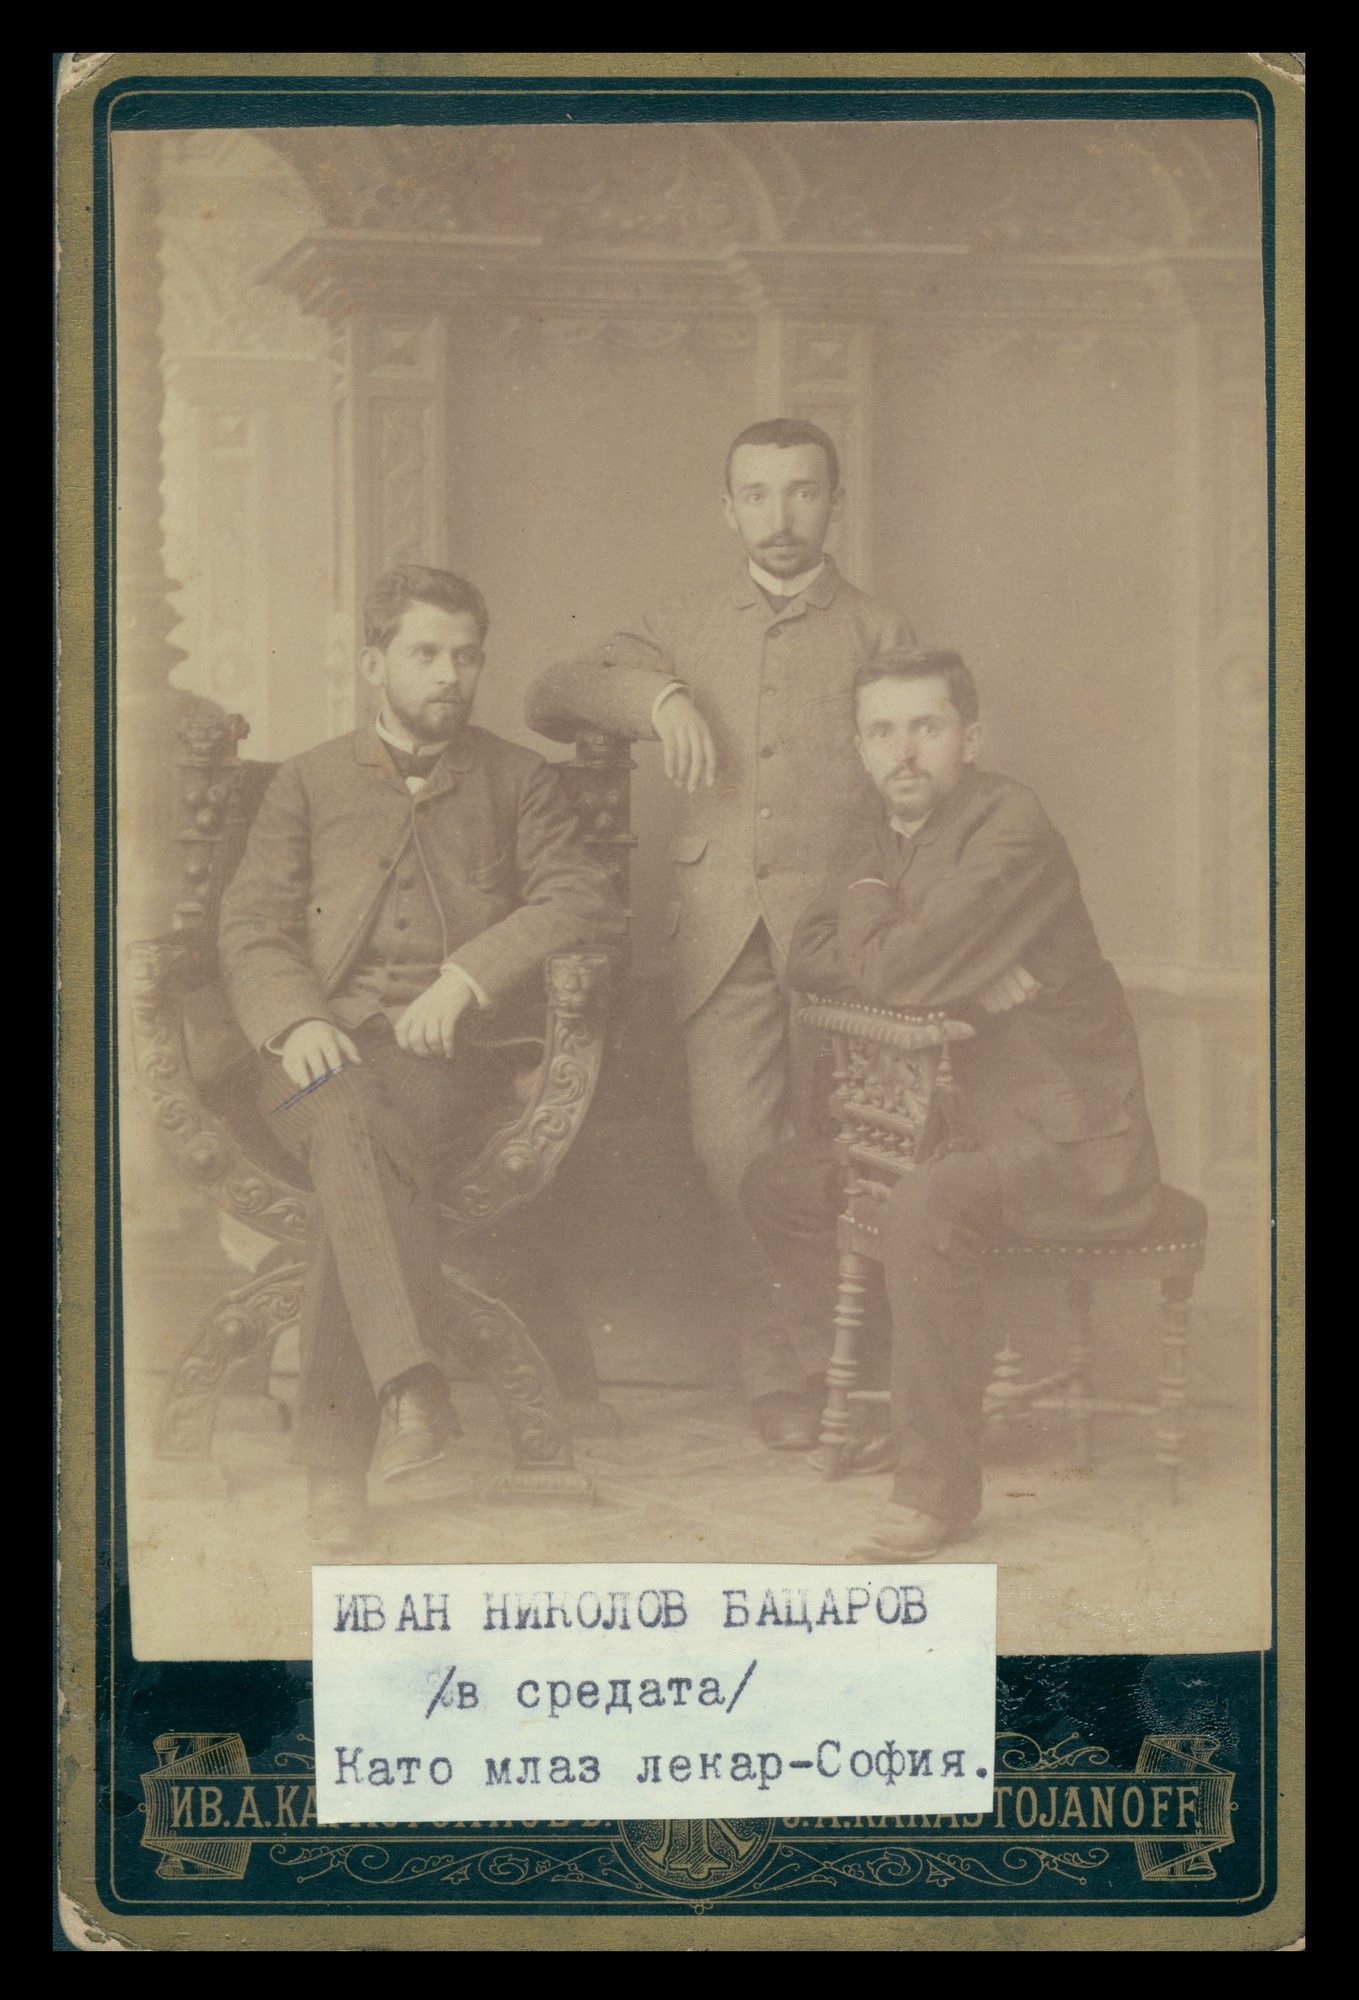 Group portrait of three men, © State Archives - Sofia